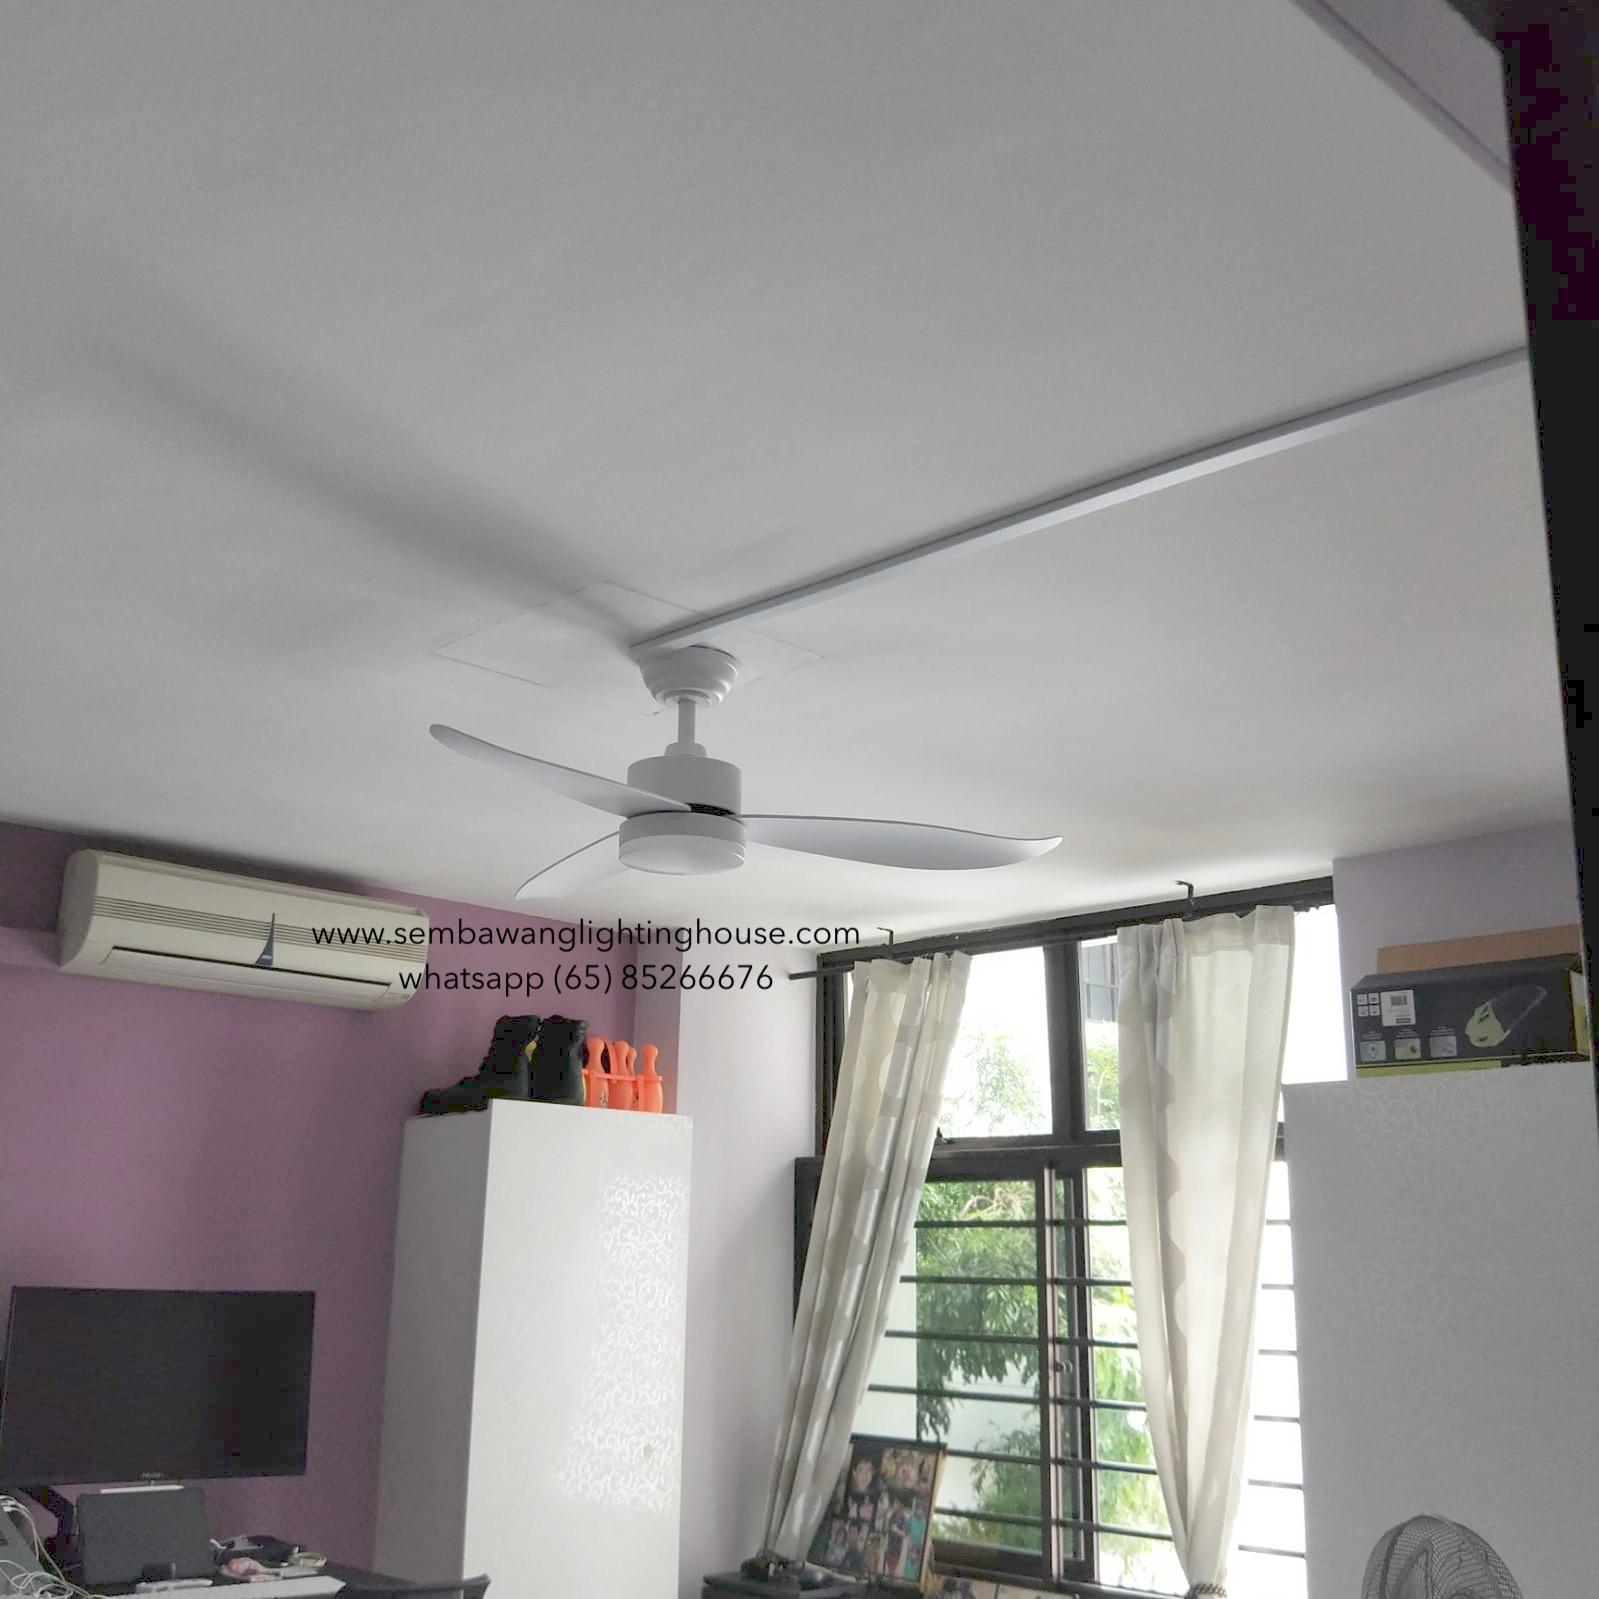 bestar-razor-white-ceiling-fan-sembawang-lighting-house-09.jpg